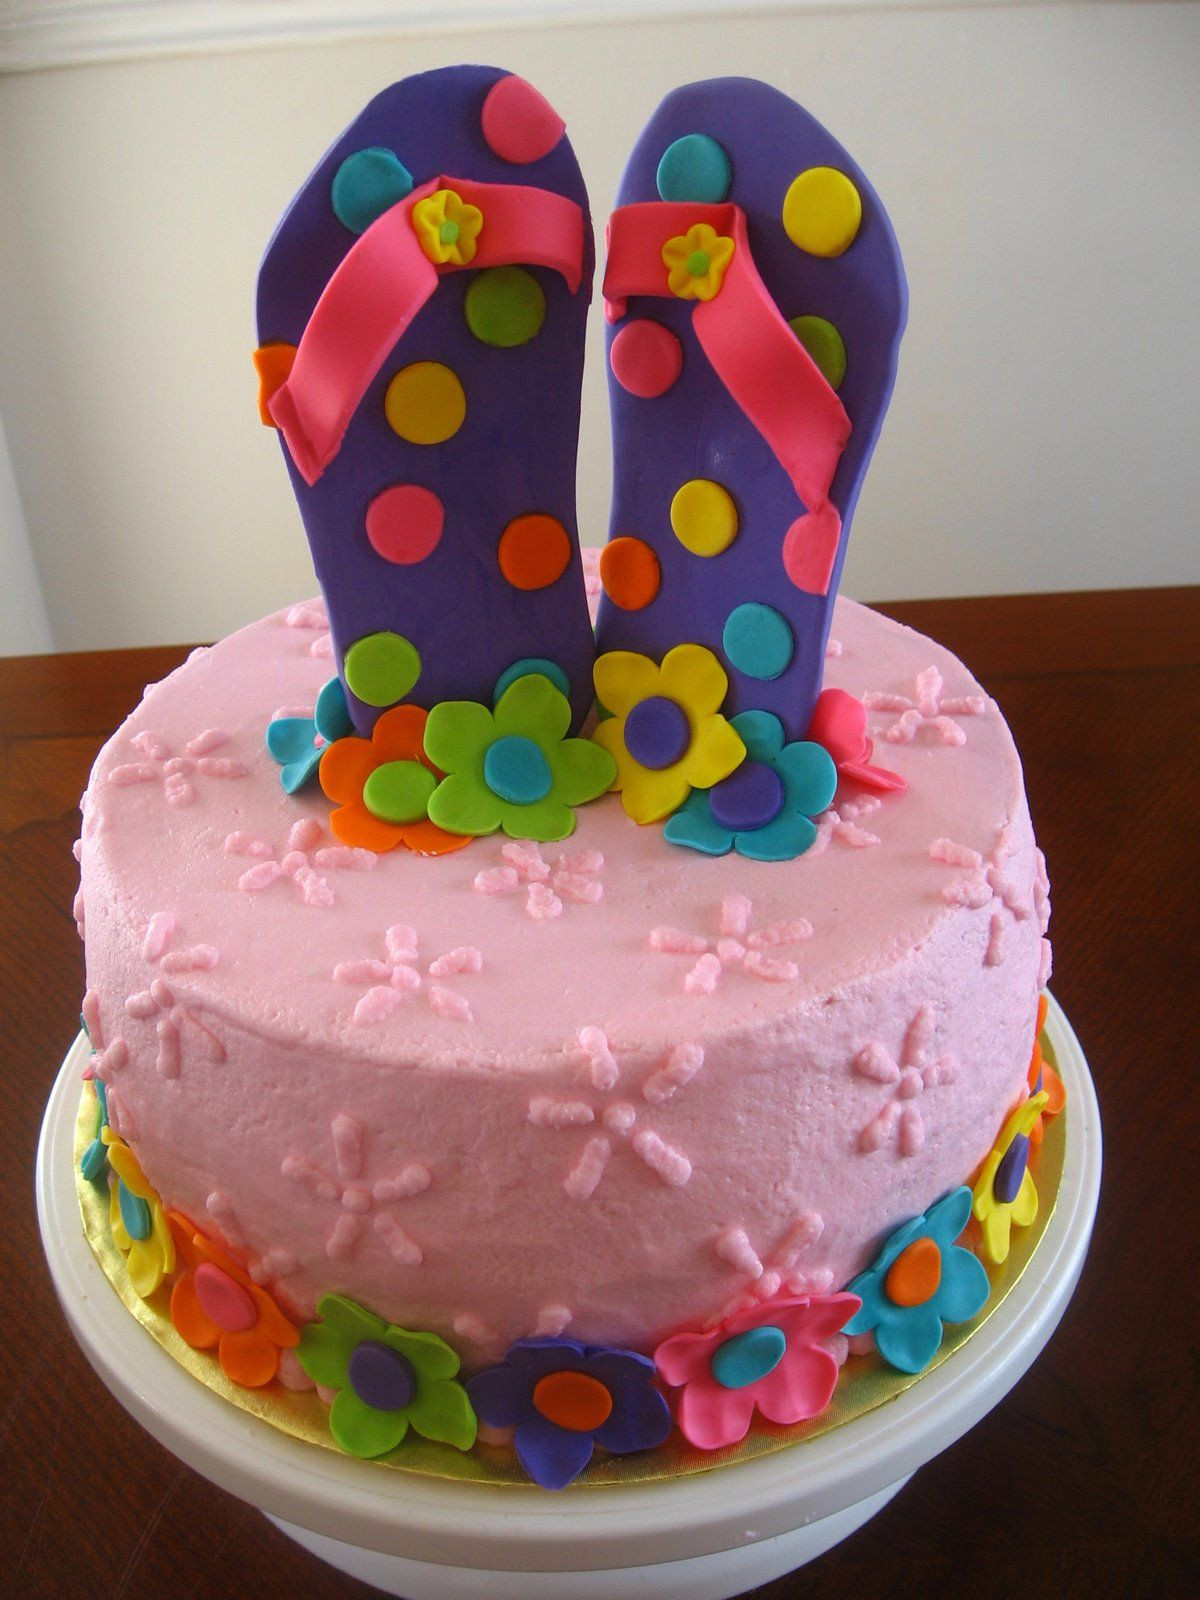 Pool Party Cake Ideas For Birthdays  pool party cakes POOL PARTY THEMES